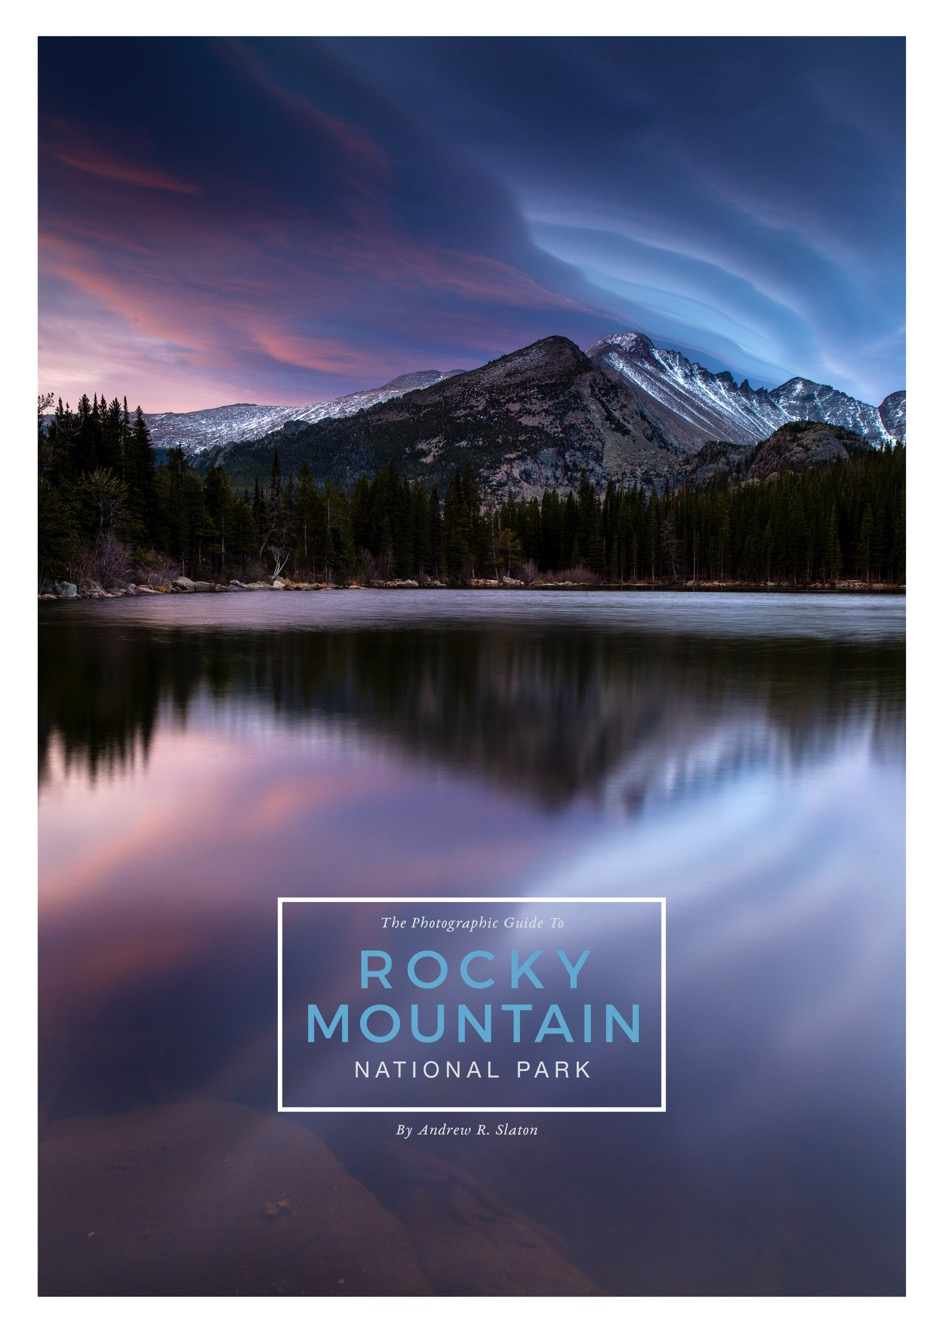 The Photographic Guide To Rocky Mountain National Park - COVER.jpg